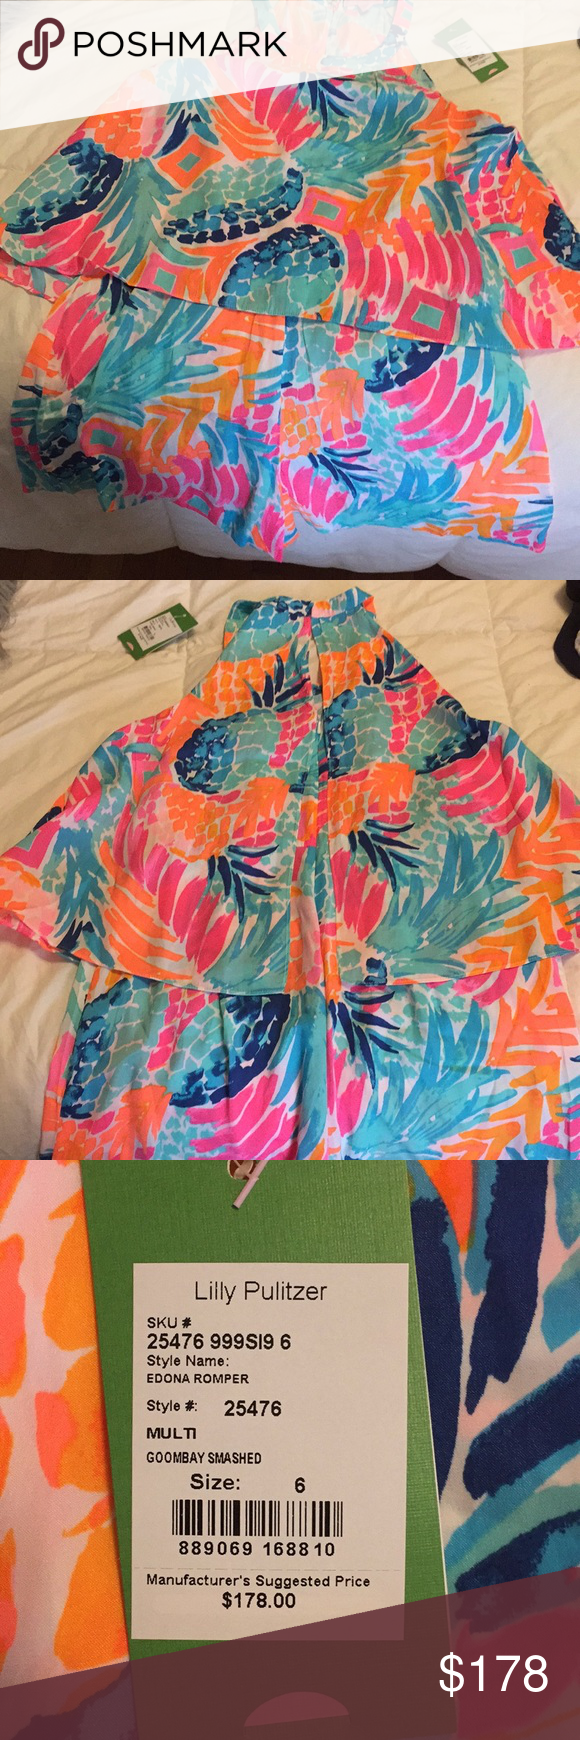 8711be972ae2 Lilly Pulitzer Romper Never been worn Lilly Romper in Goombay Smashed Lilly  Pulitzer Other